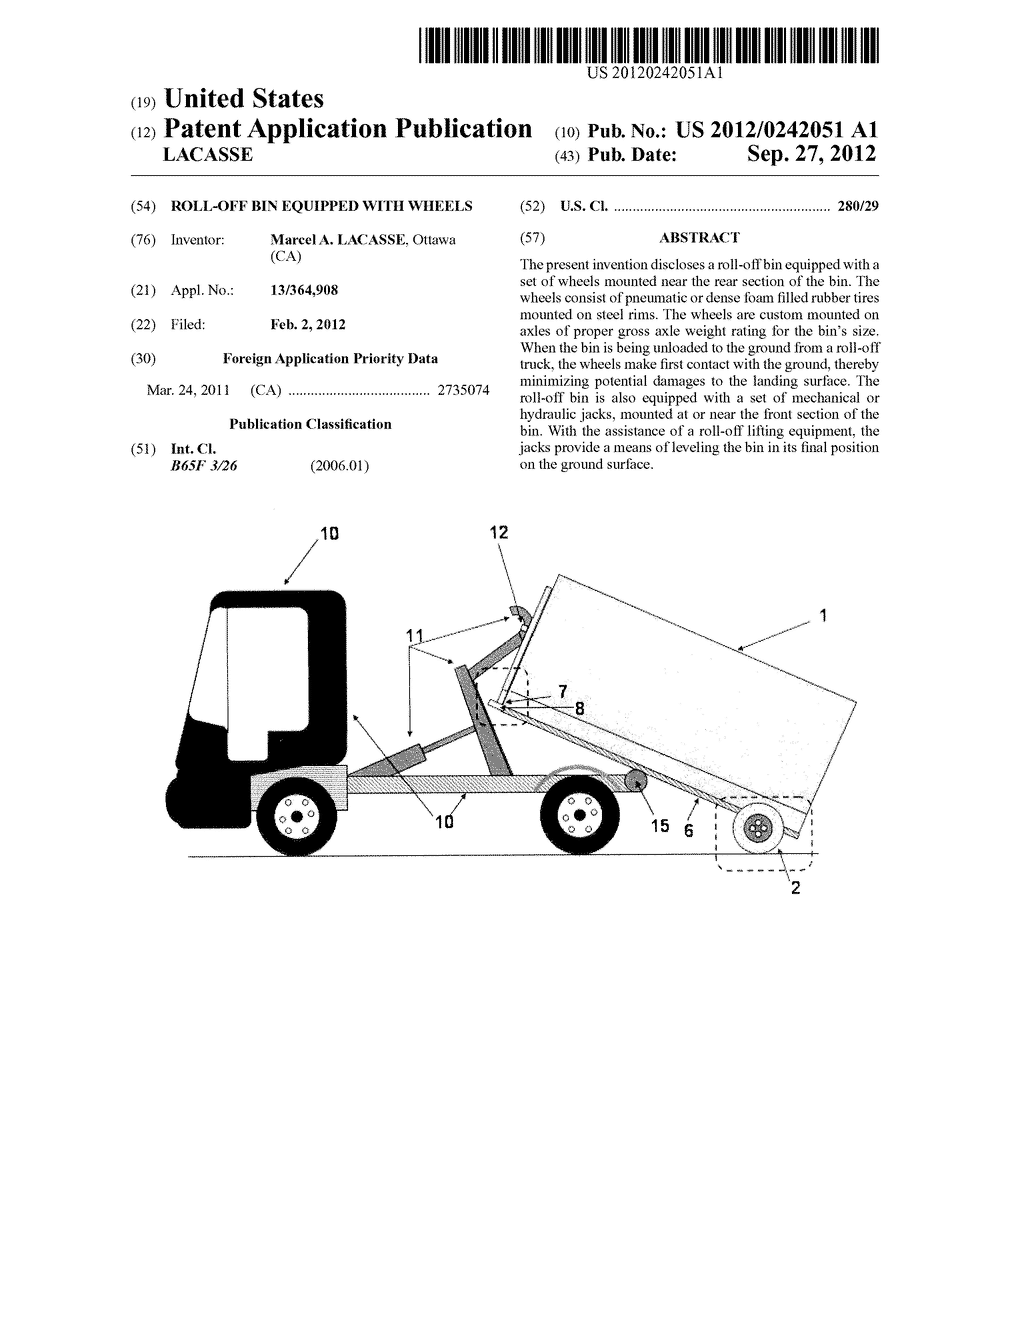 ROLL-OFF BIN EQUIPPED WITH WHEELS - diagram, schematic, and image 01